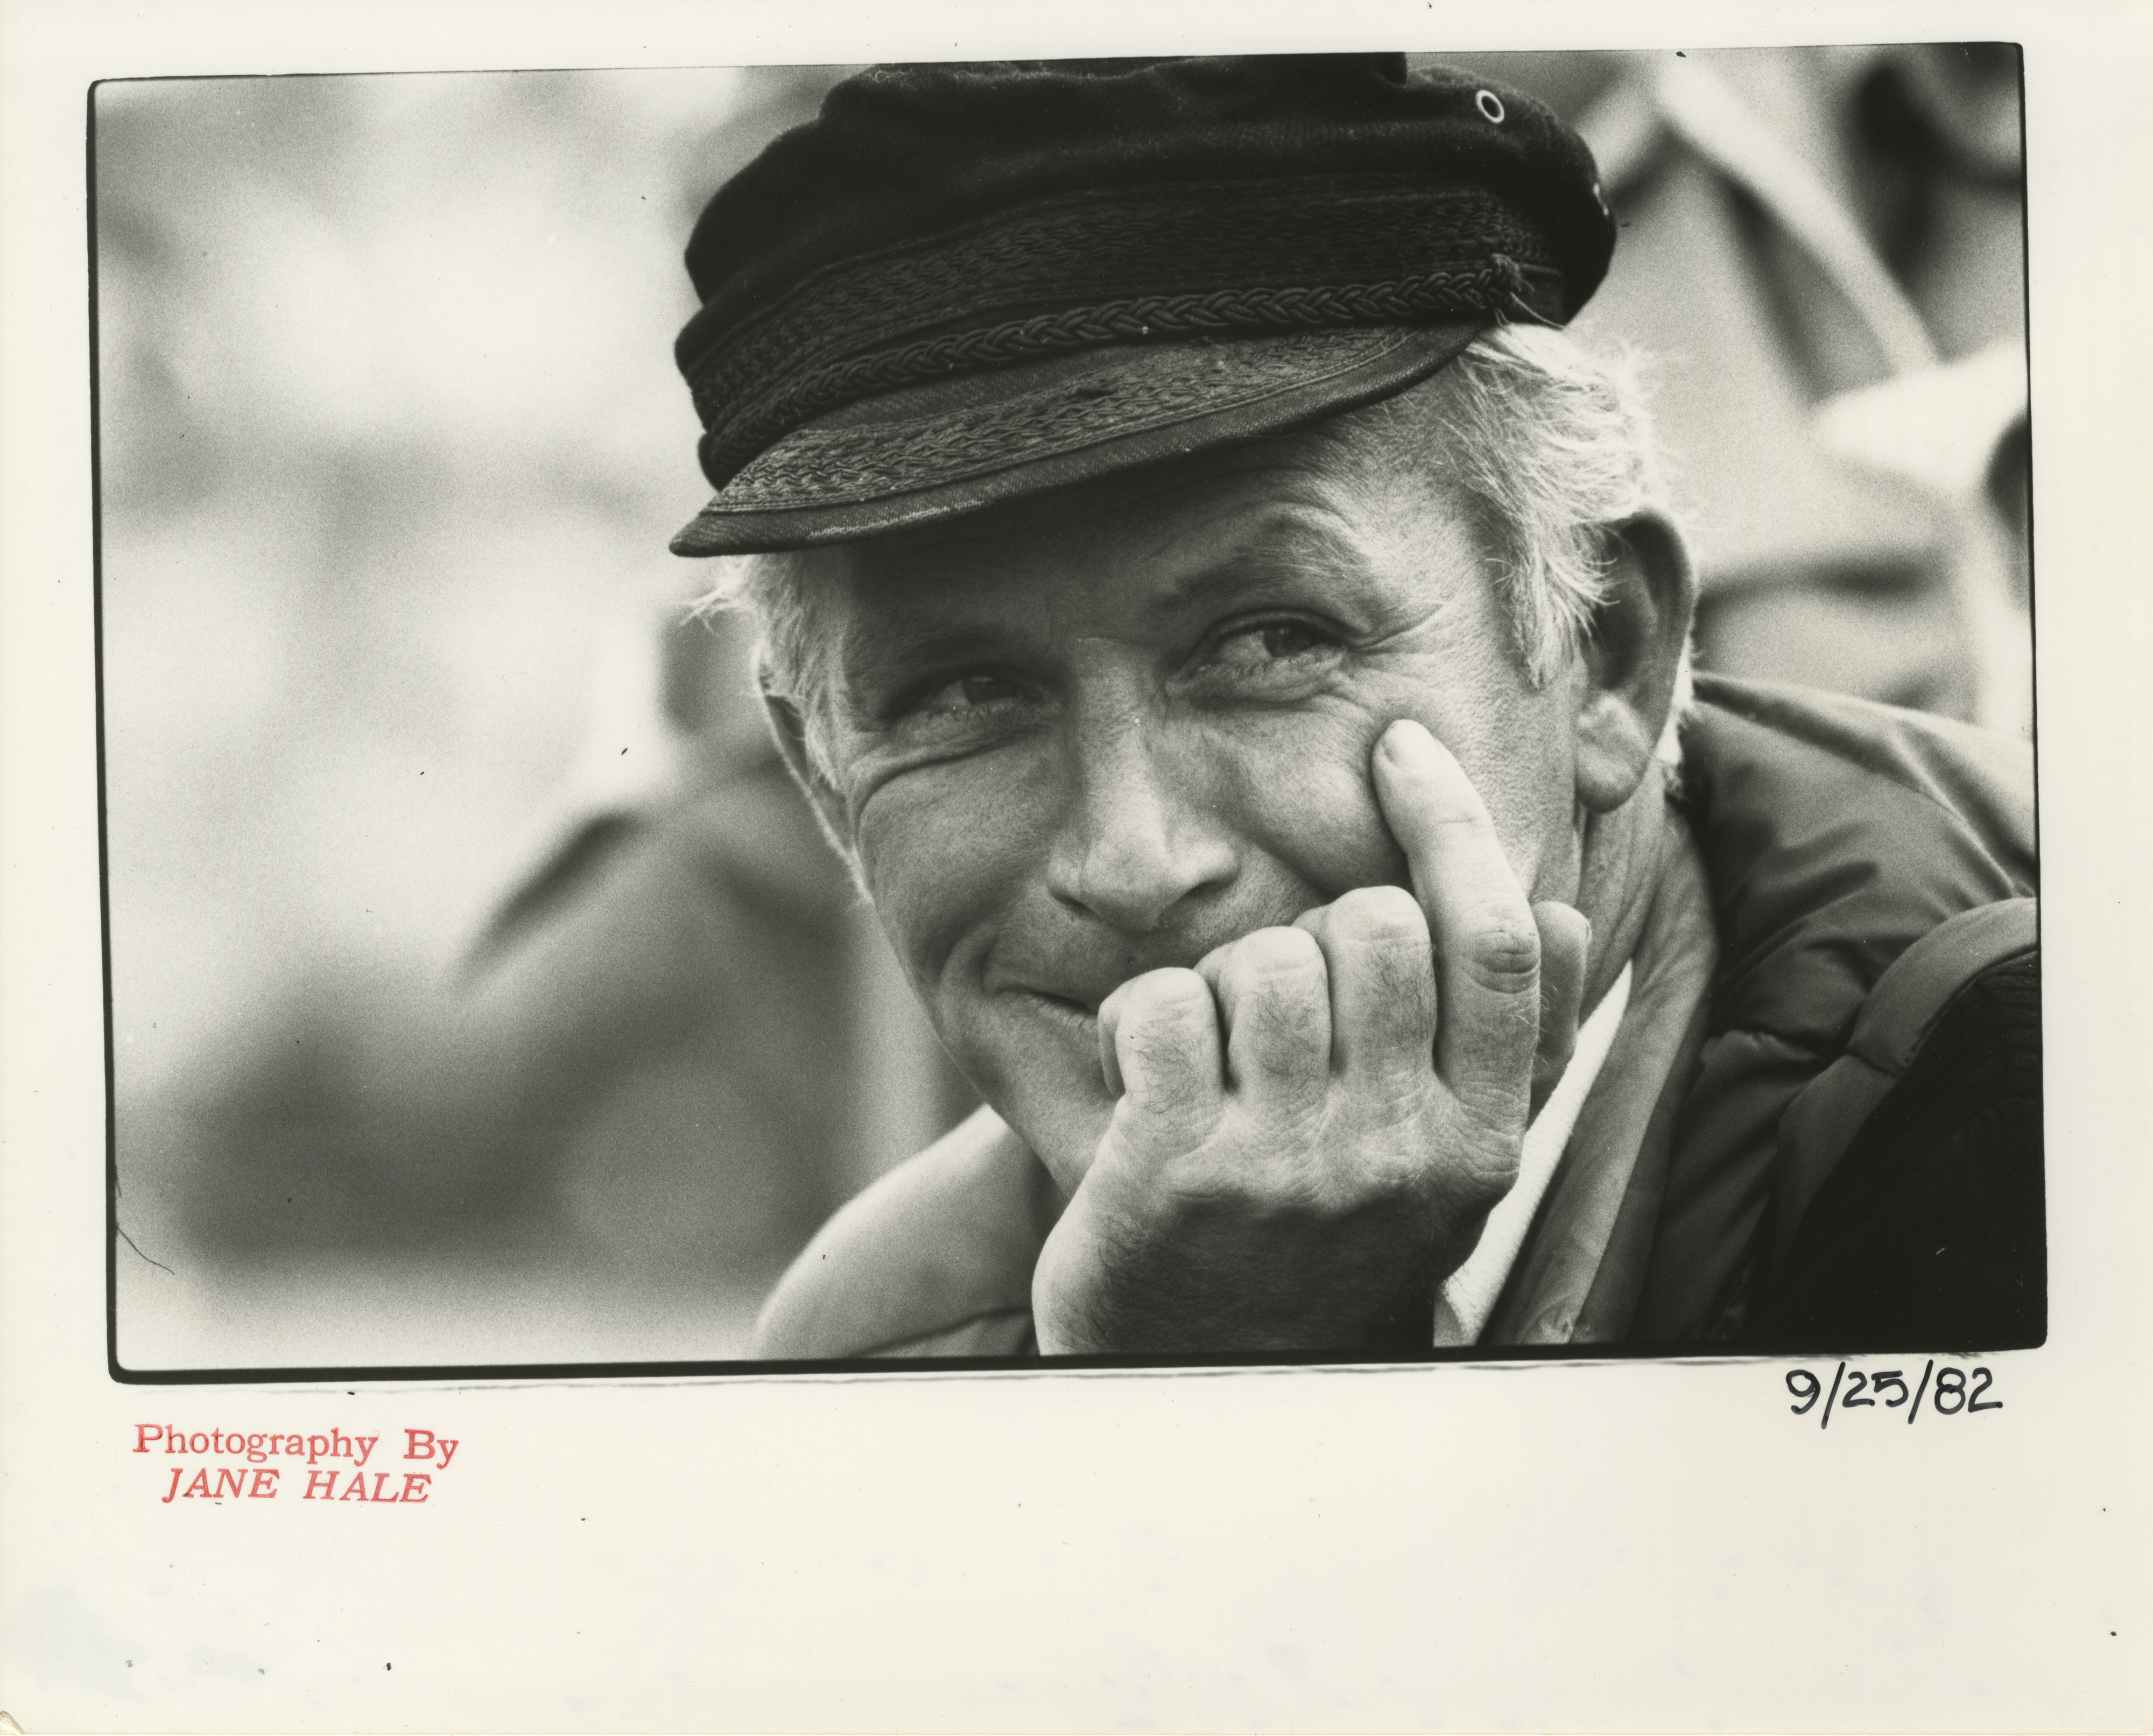 Ann Arbor News Photographer Jack Stubbs, September 1982 image